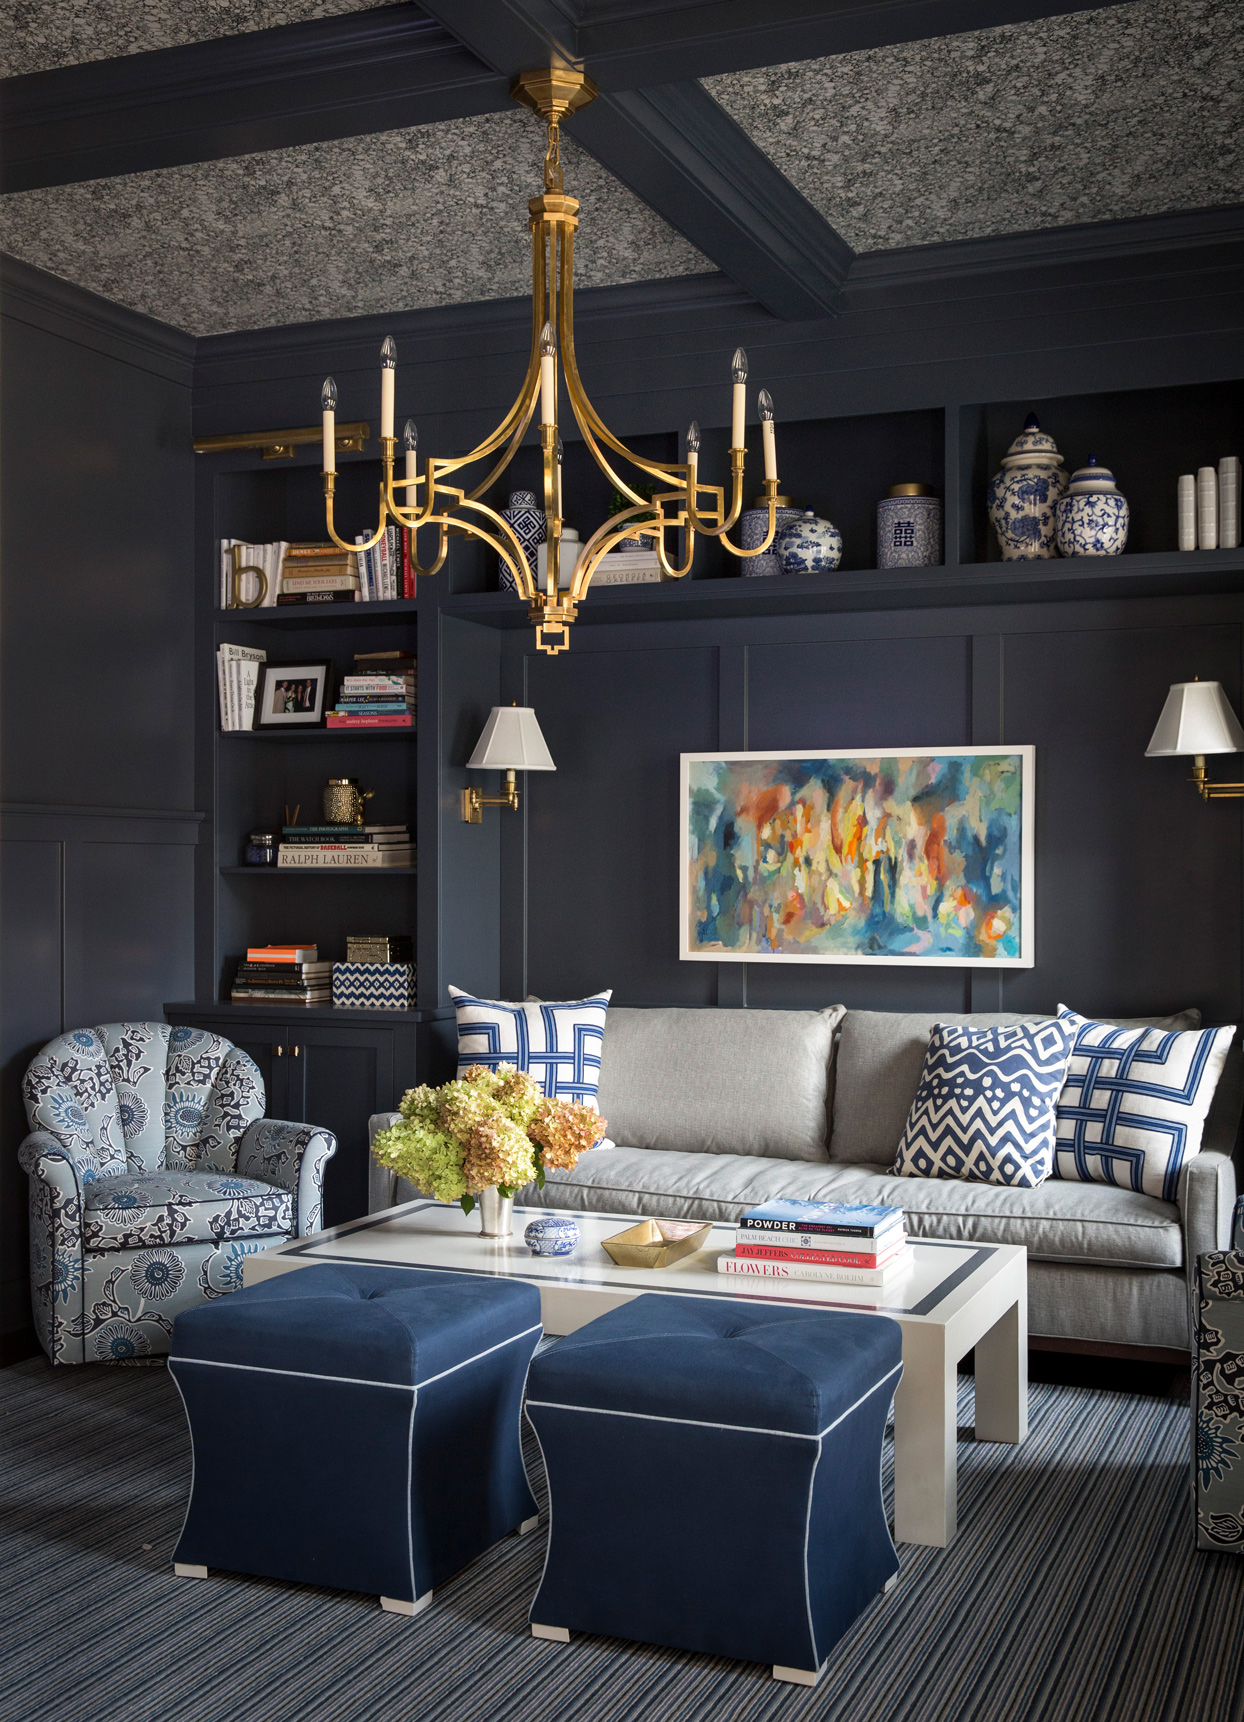 blue white and gold themed room decor and painted walls